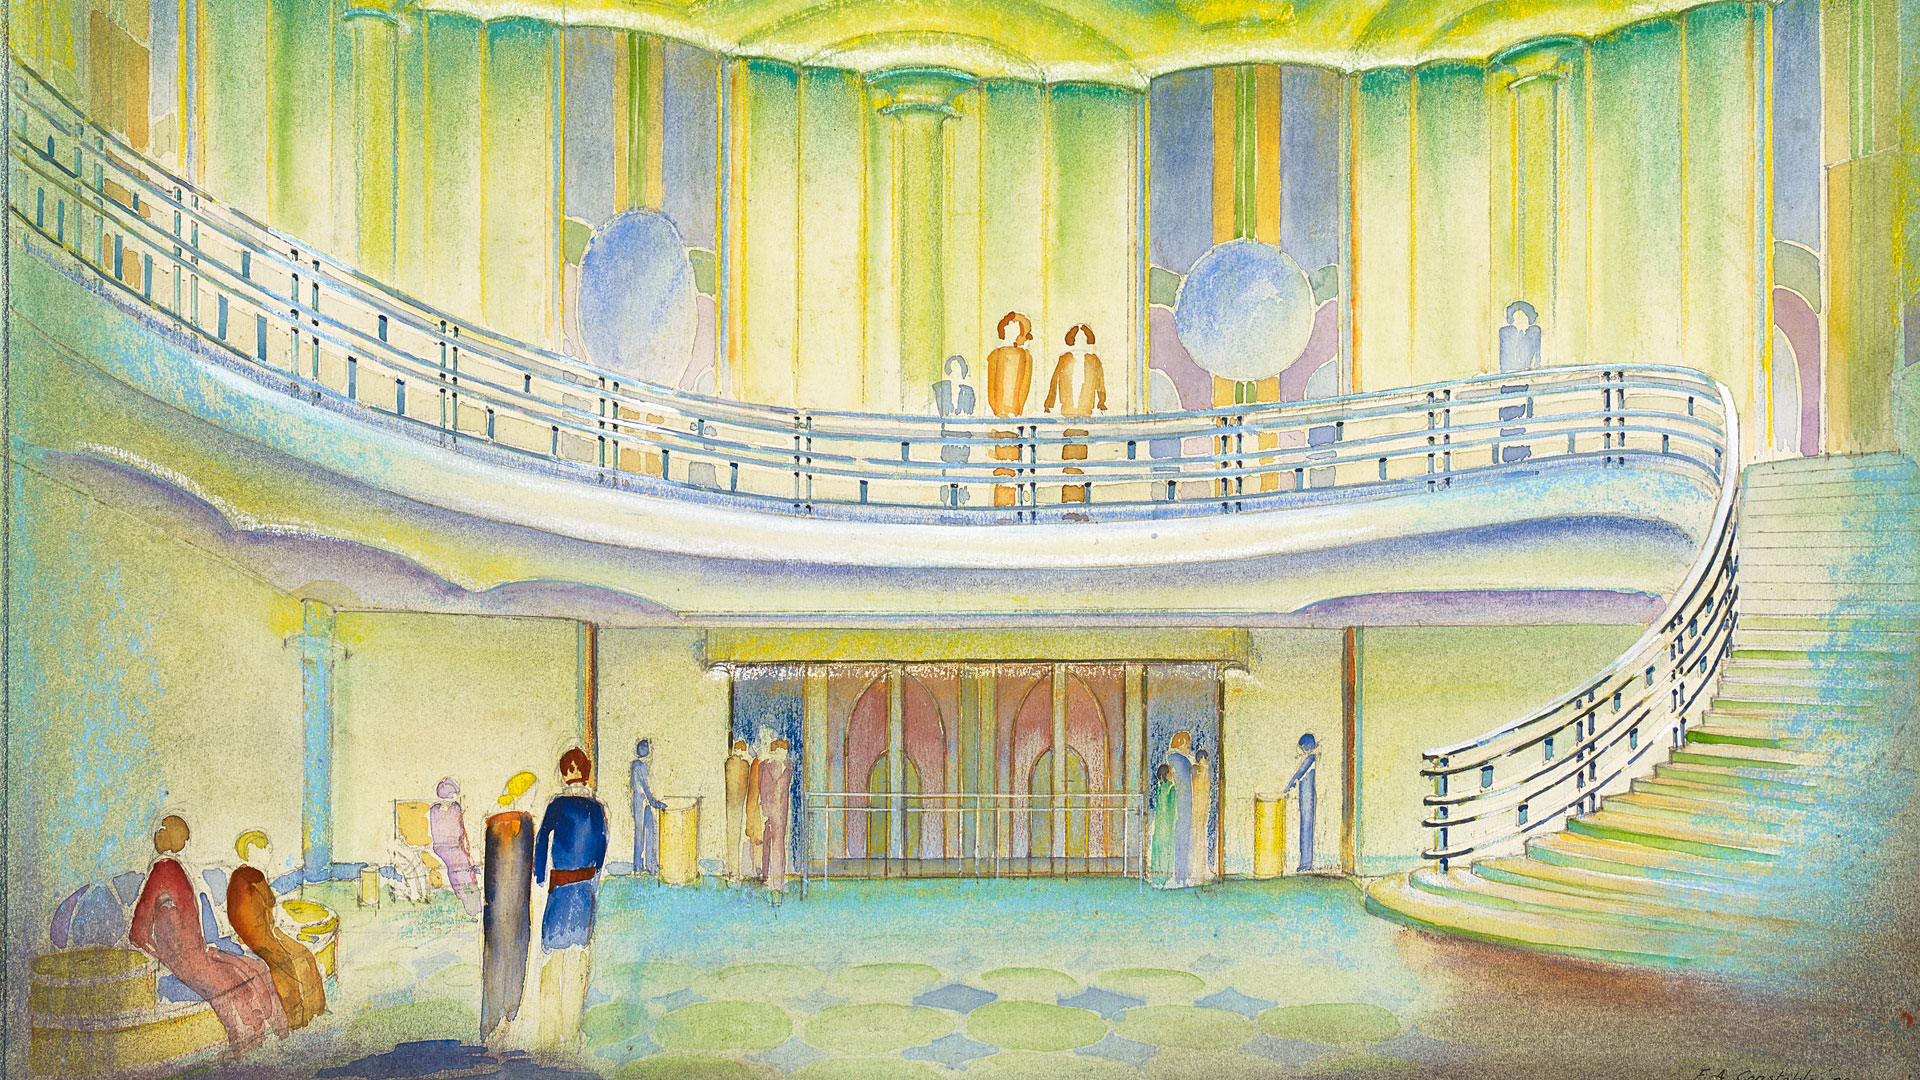 Watercolor study of a theatre lobby